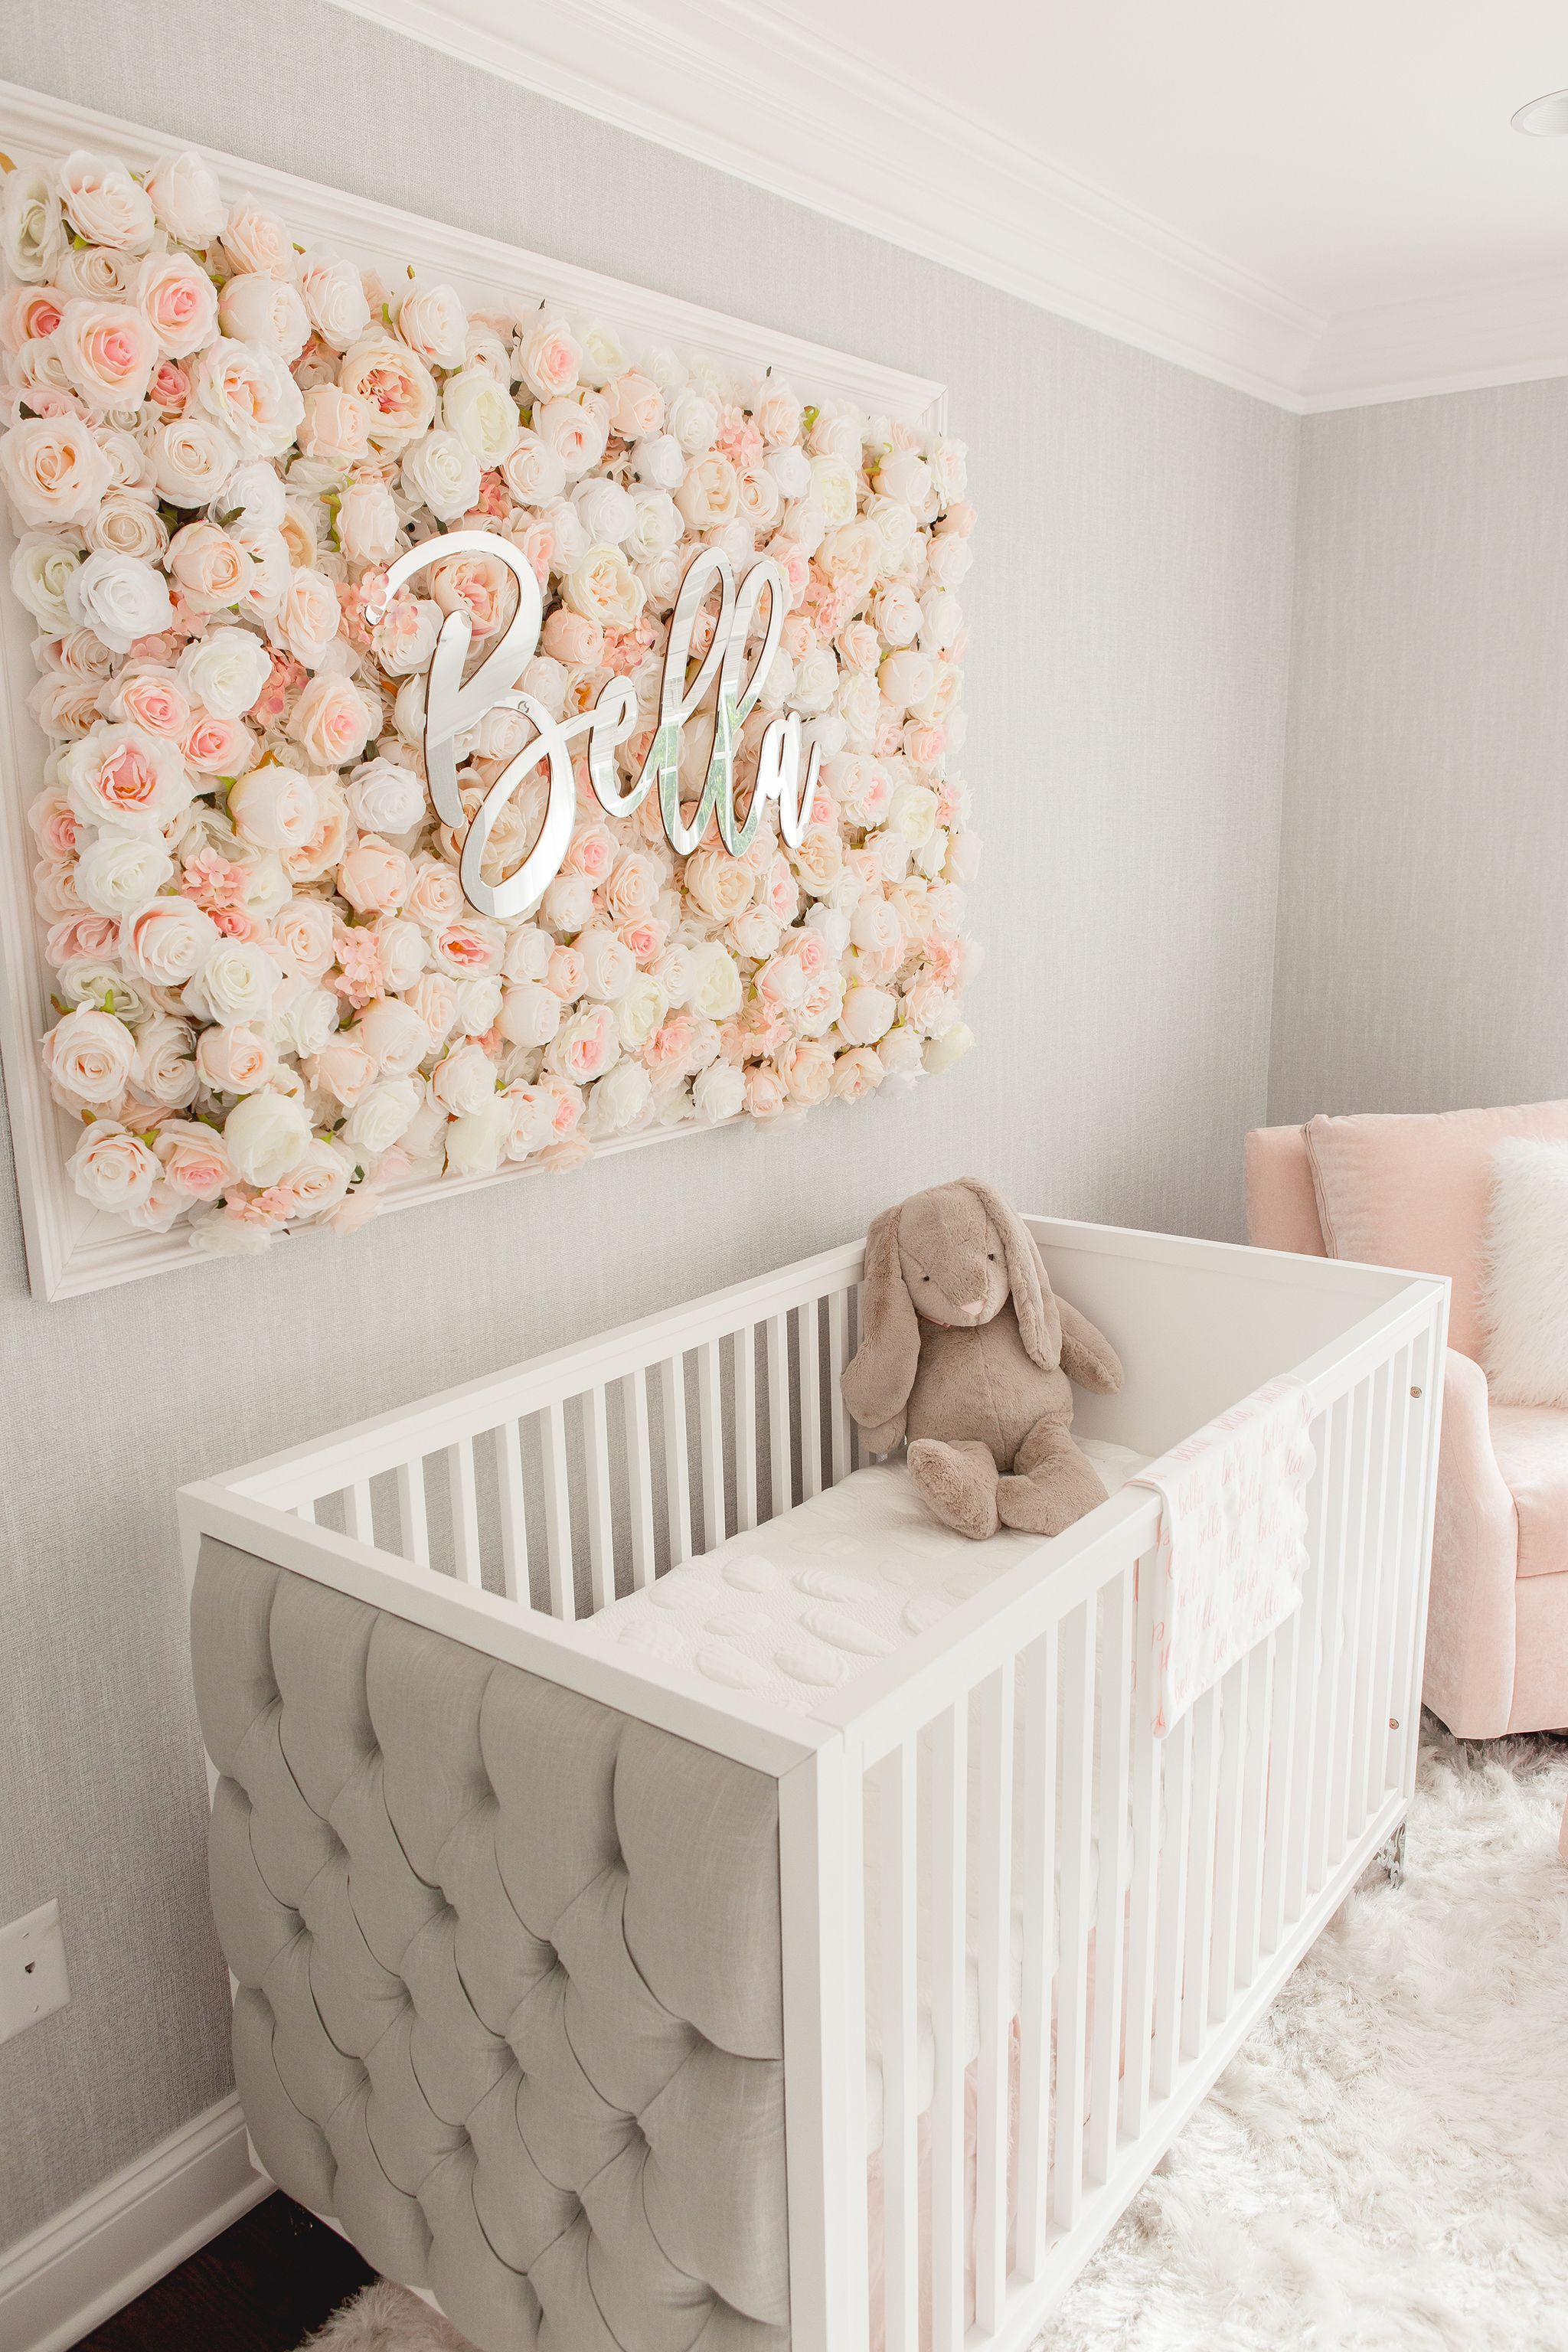 Babies Rooms Baby Sharing Room With Smoker Furniture For ...